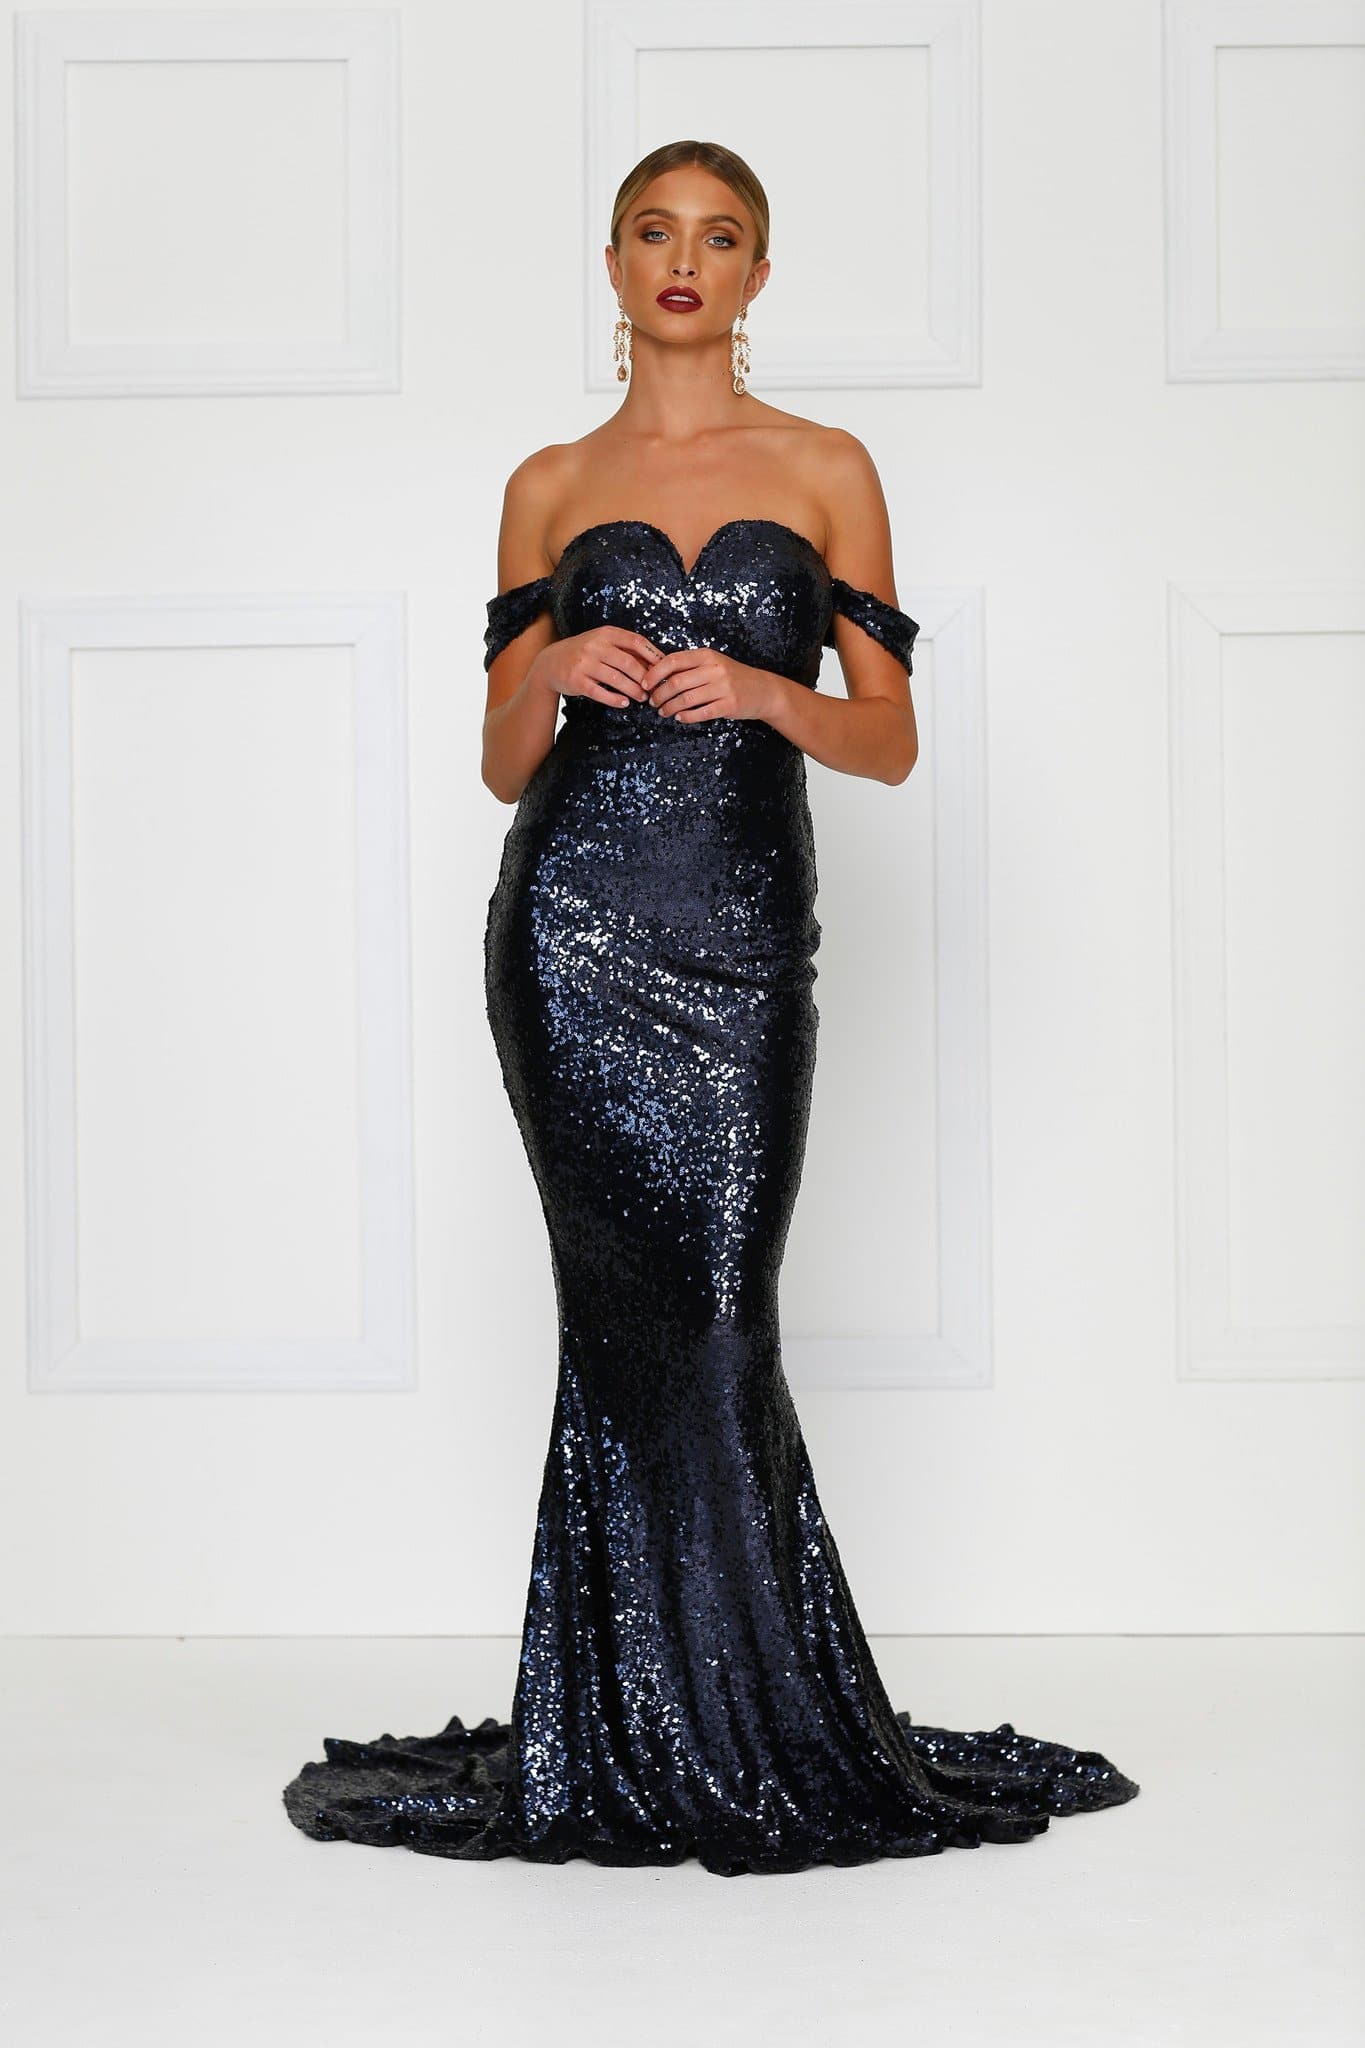 Jonquille gown by Alamour The Label is Strapless Sequin Mermaid Dress in Navy